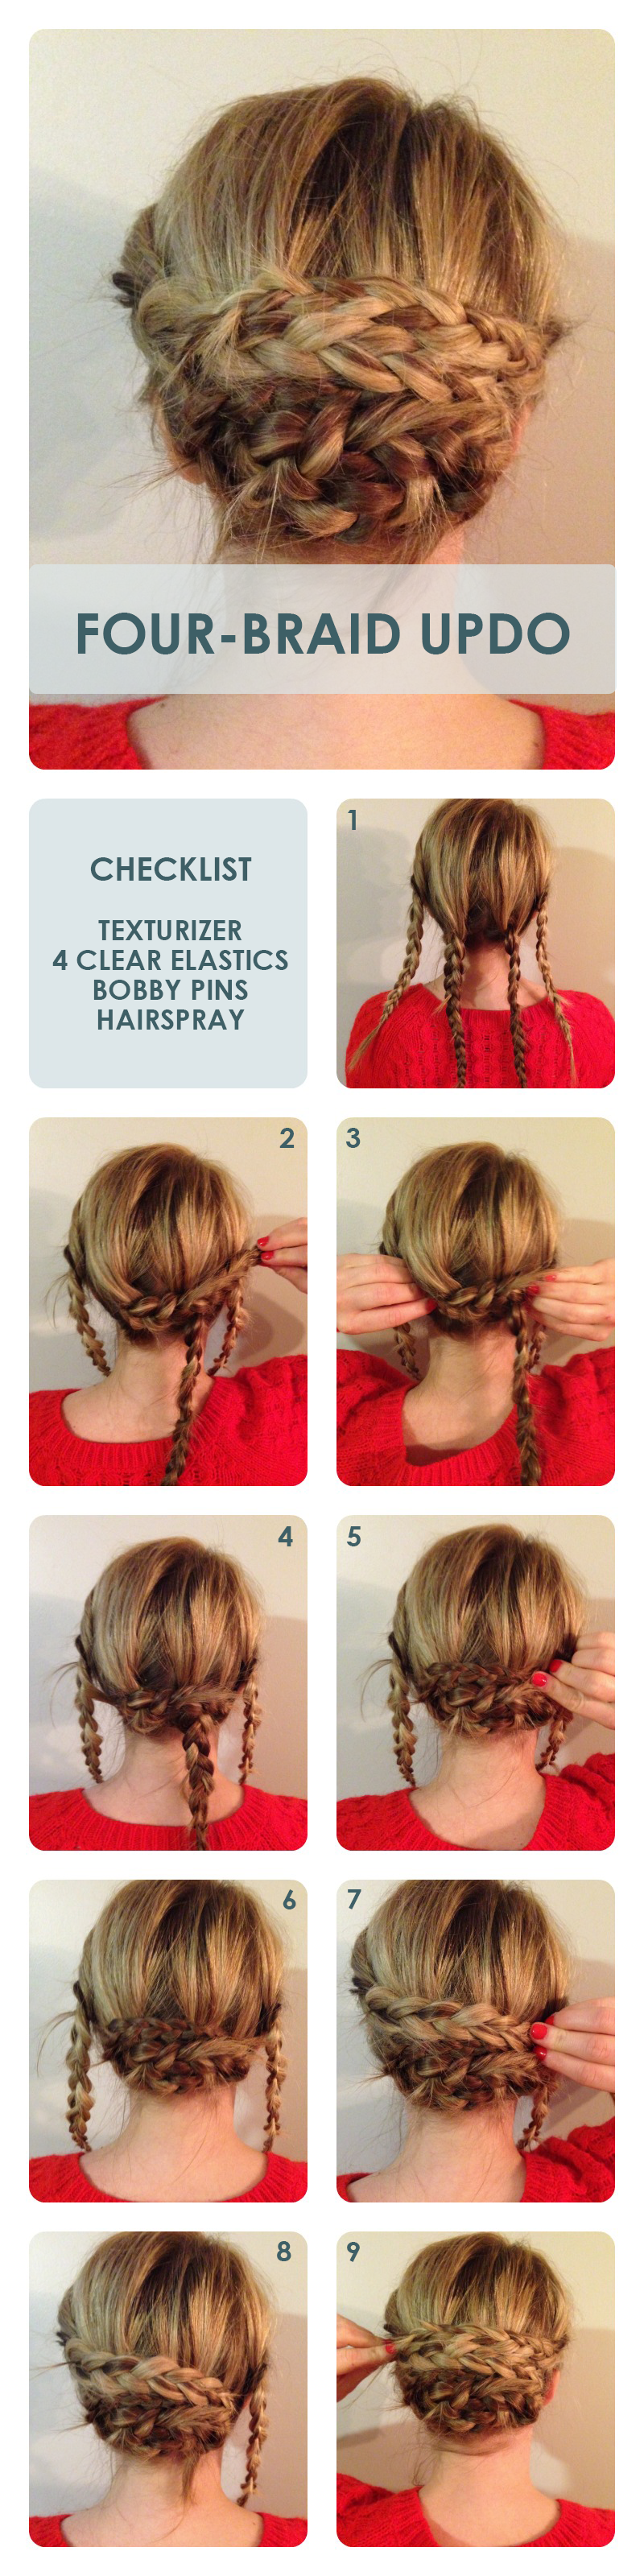 Hub four braided updo hairstyle four braids updo hairstyle